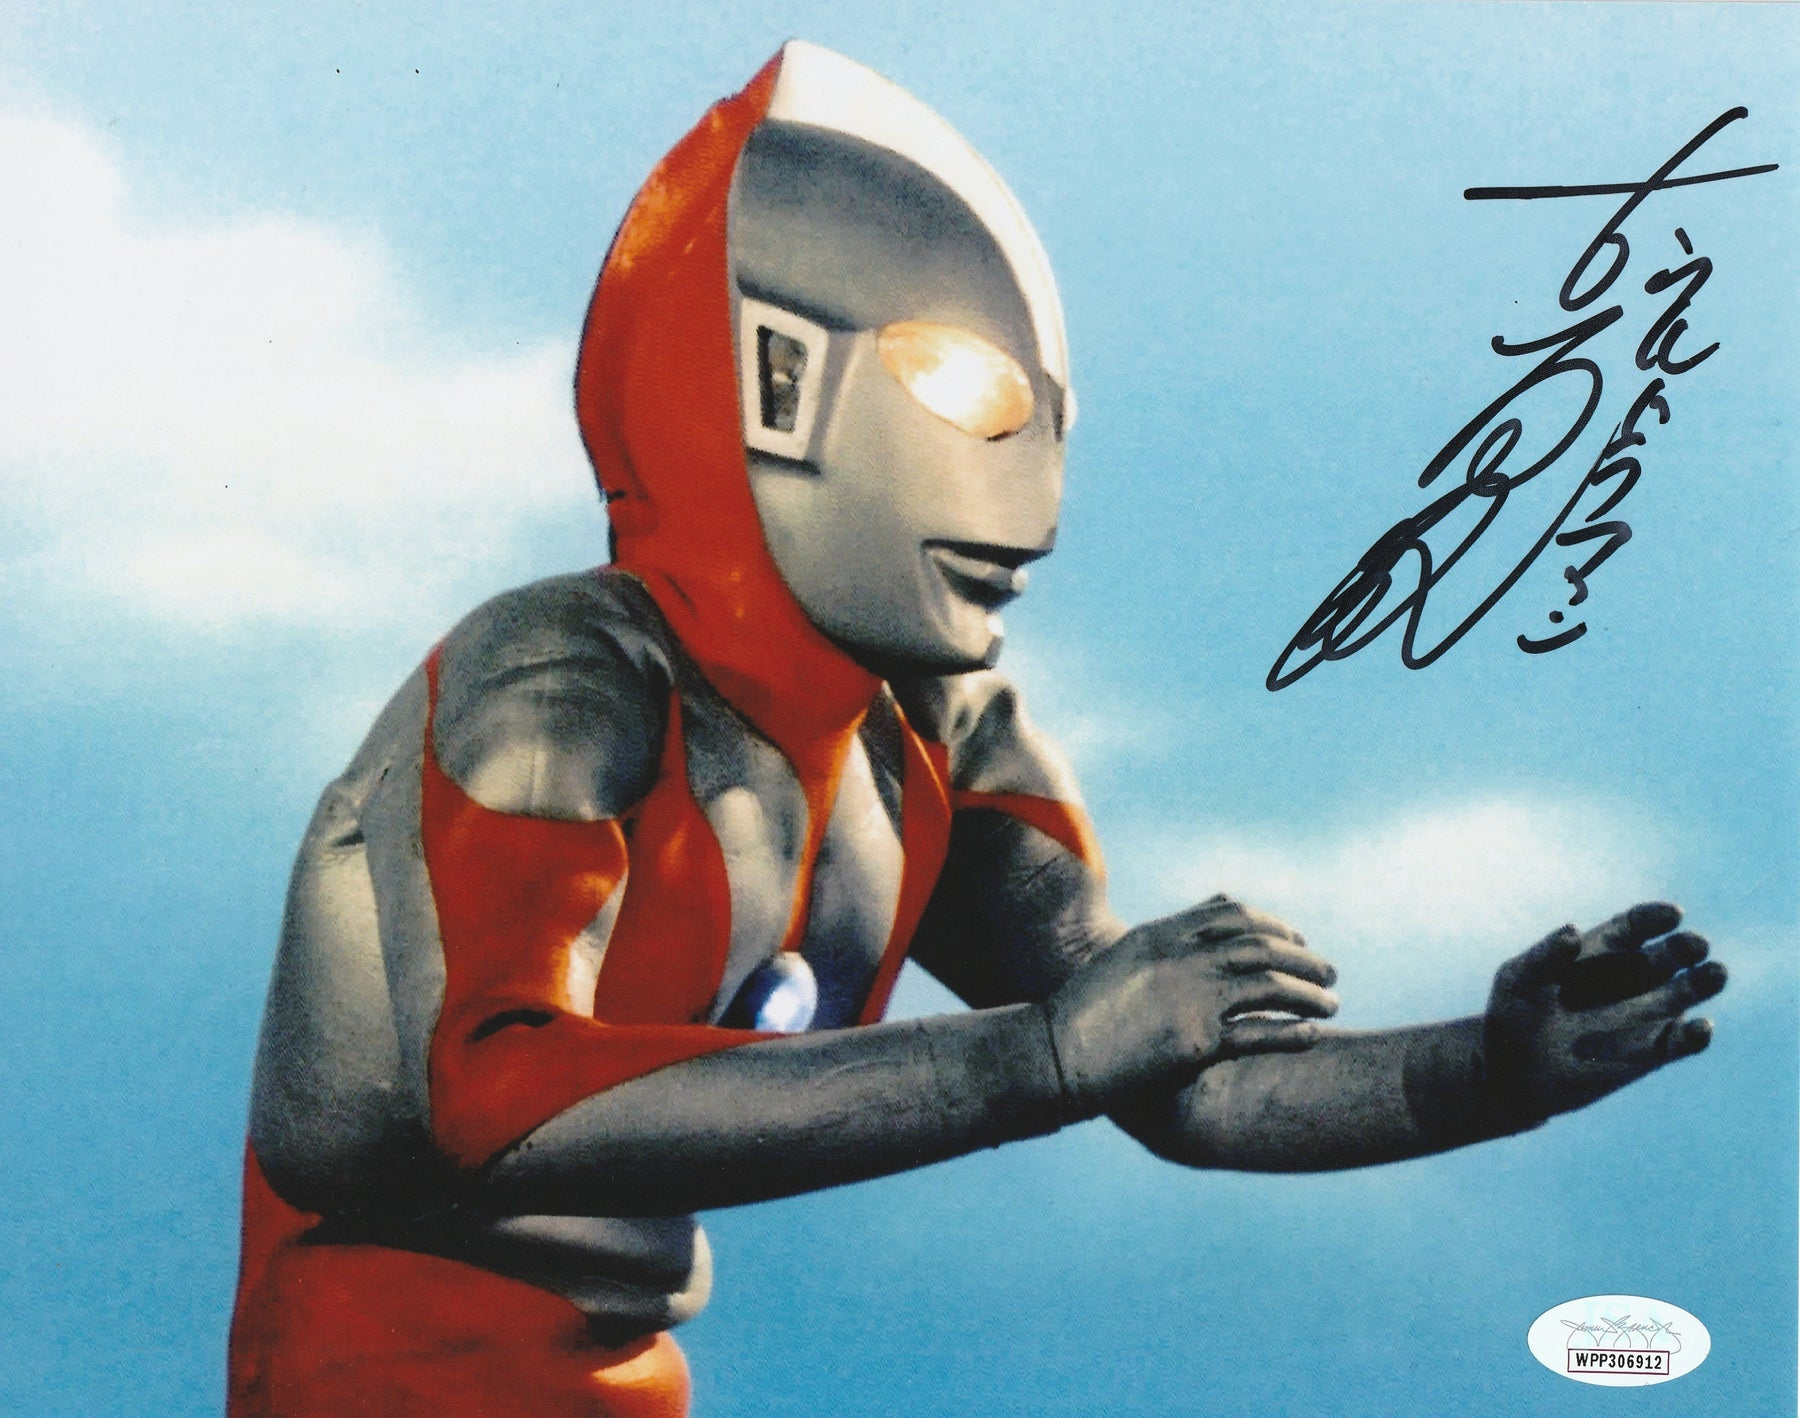 Bin Furuya Autograph 8x10 Photo Ultraman Signed JSA COA 2